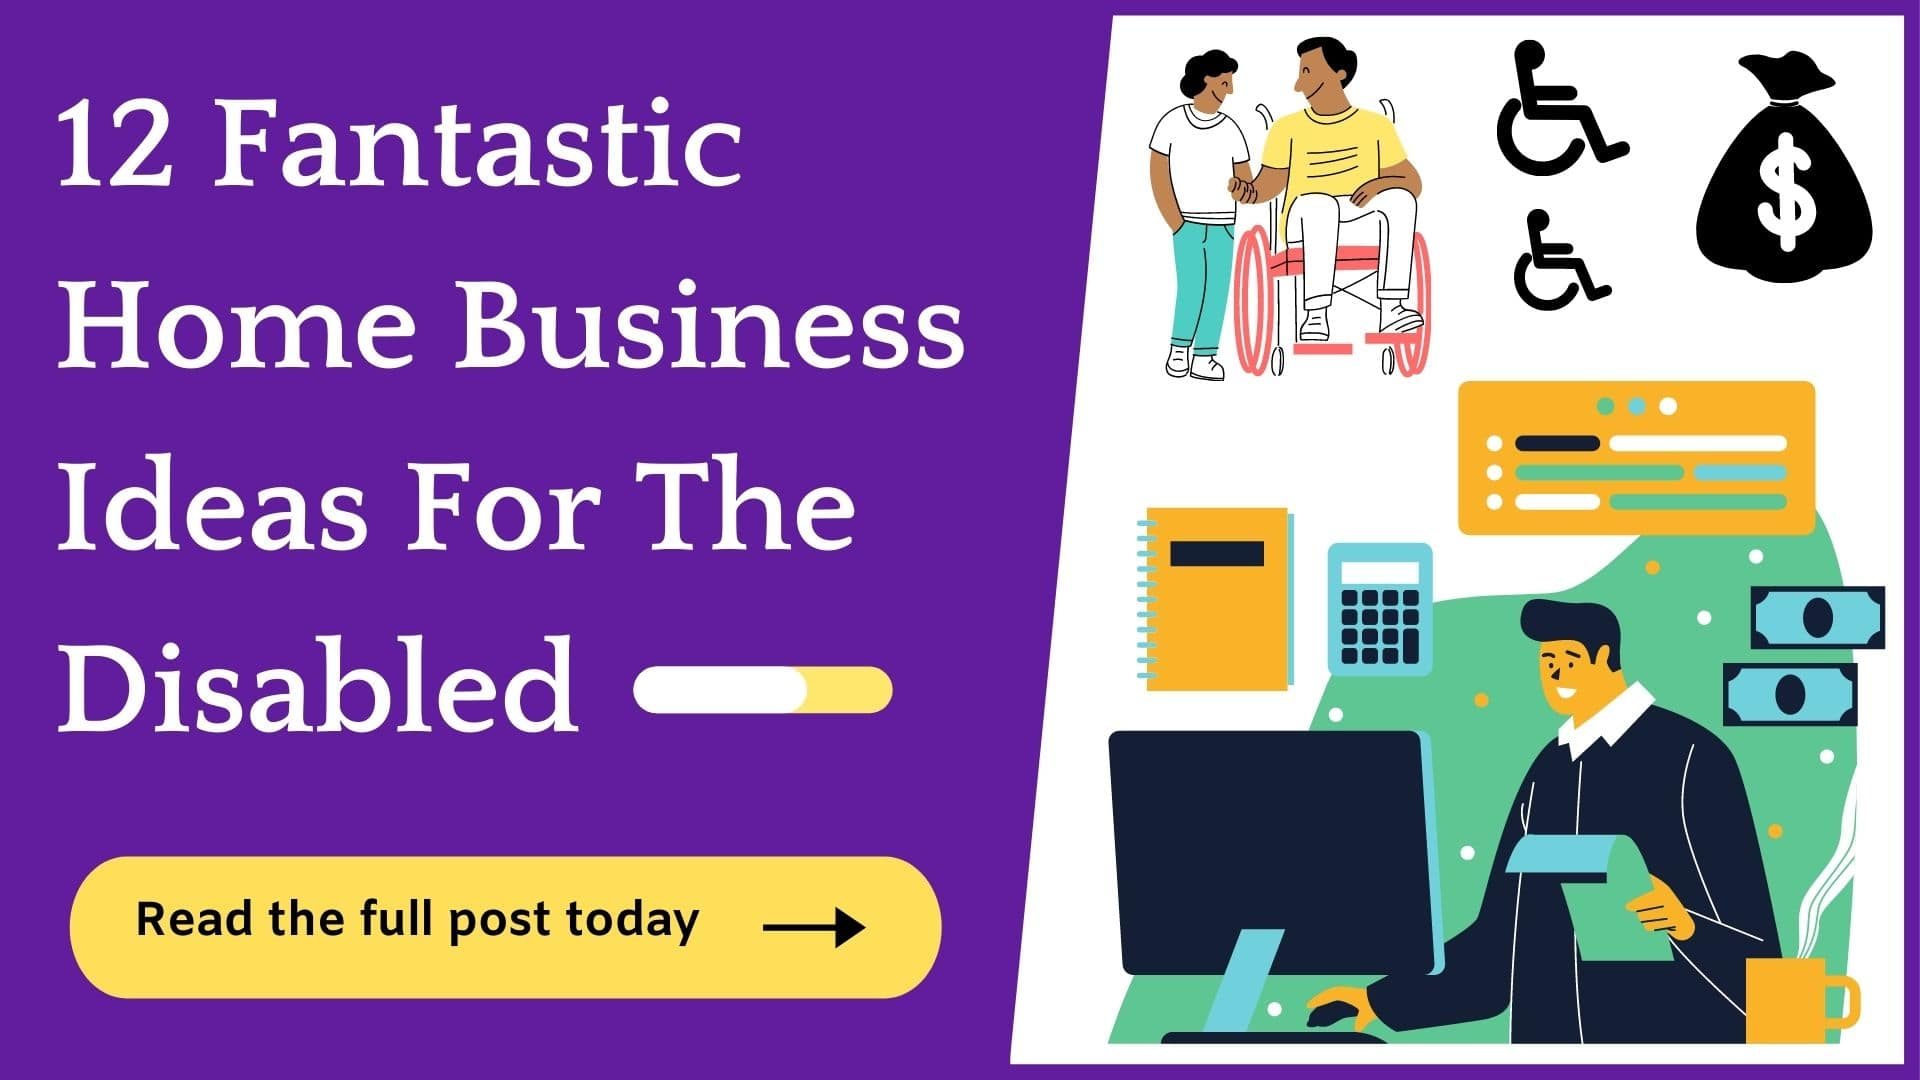 home business ideas disabled-min